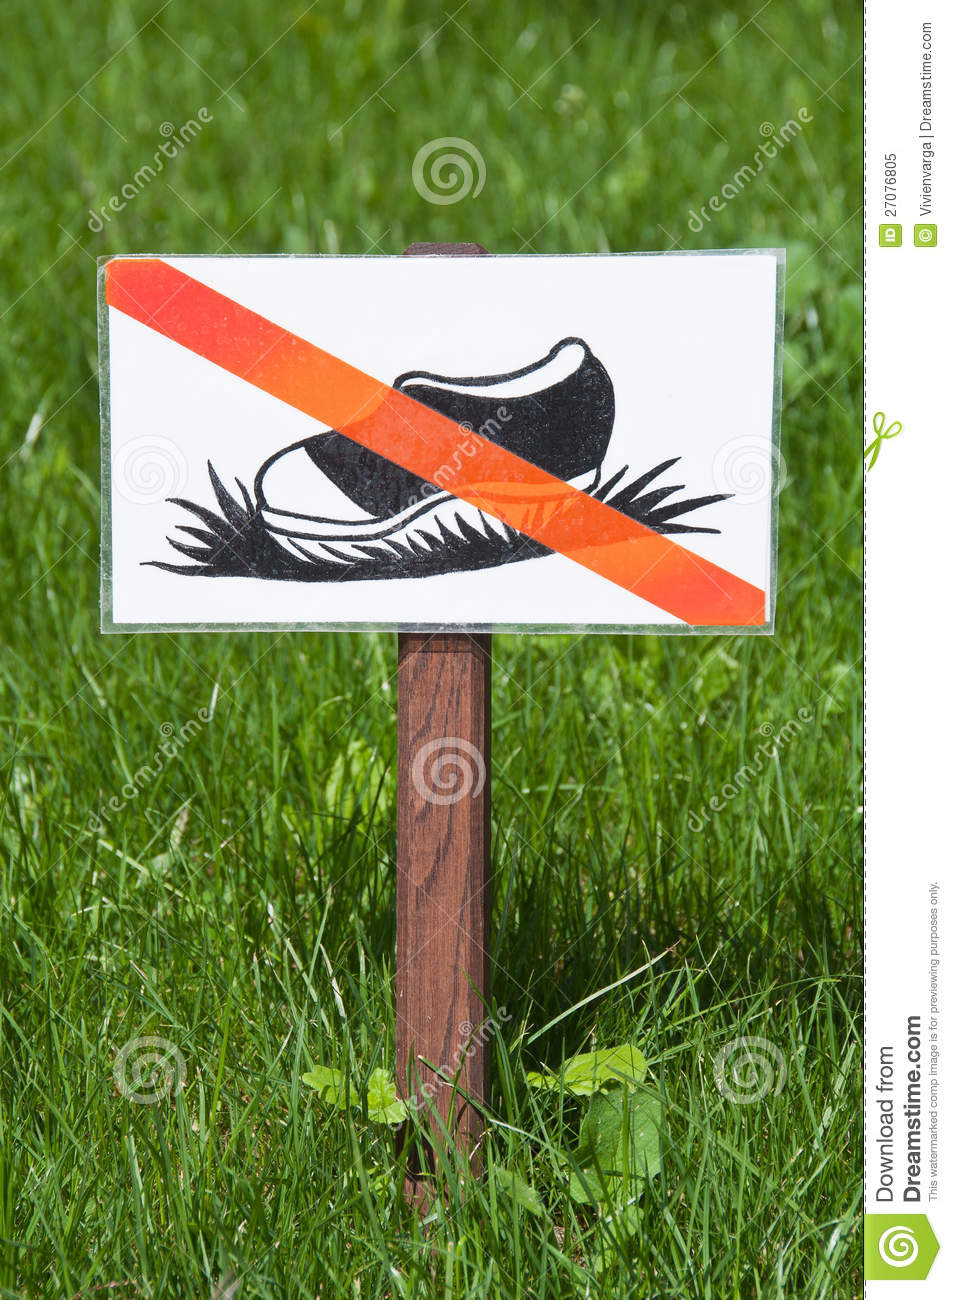 keep off the grass sign stock image image of nature